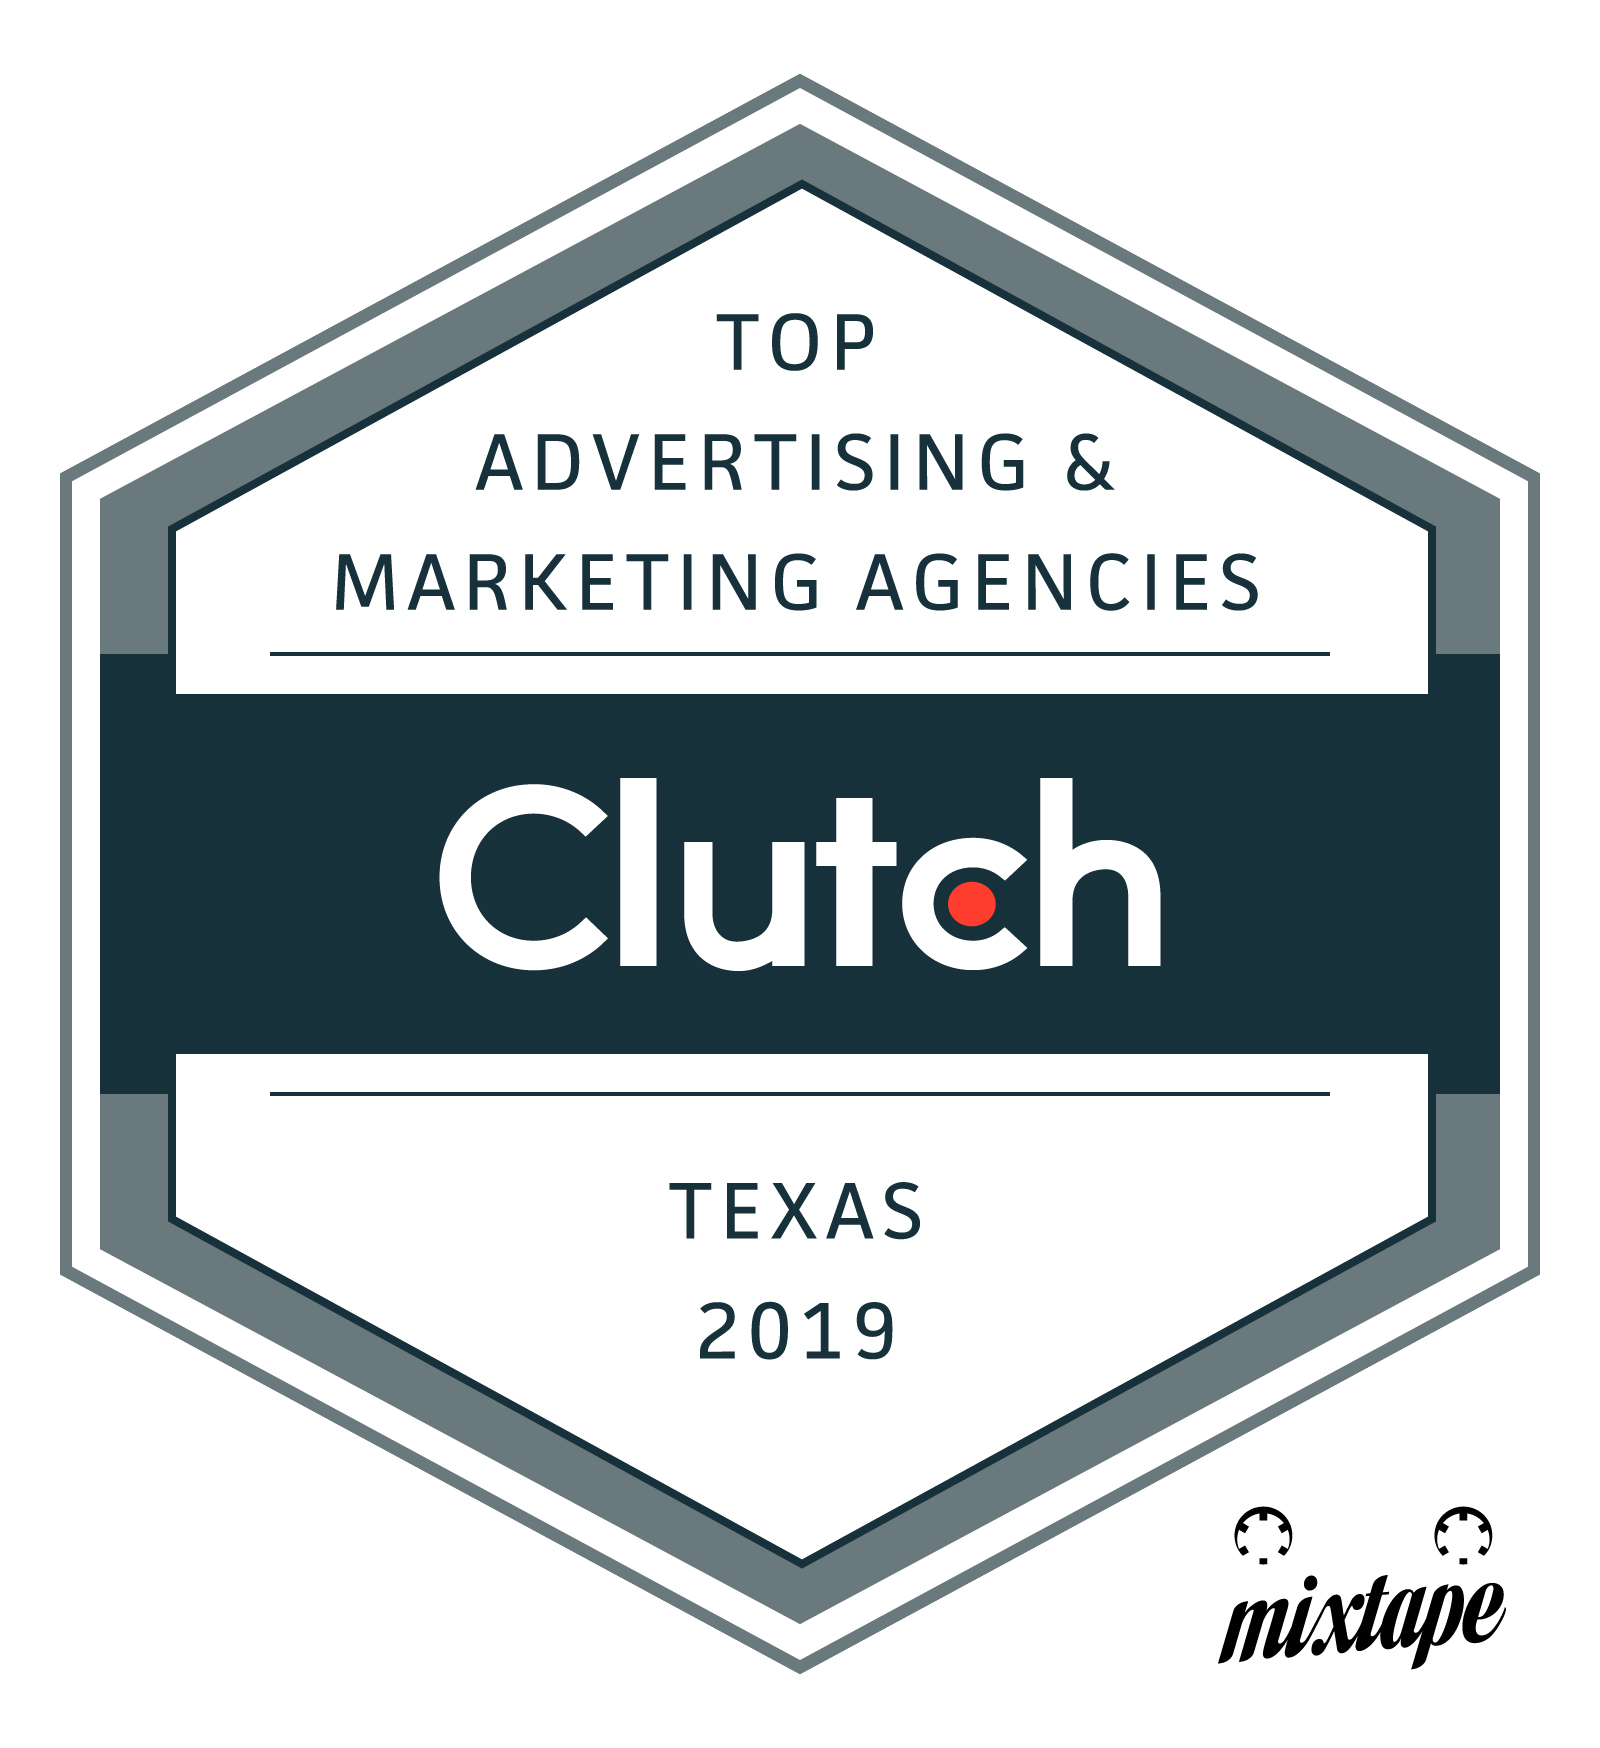 mixtape marketing is a Clutch 2019 Top Texas Advertising & Marketing Agency